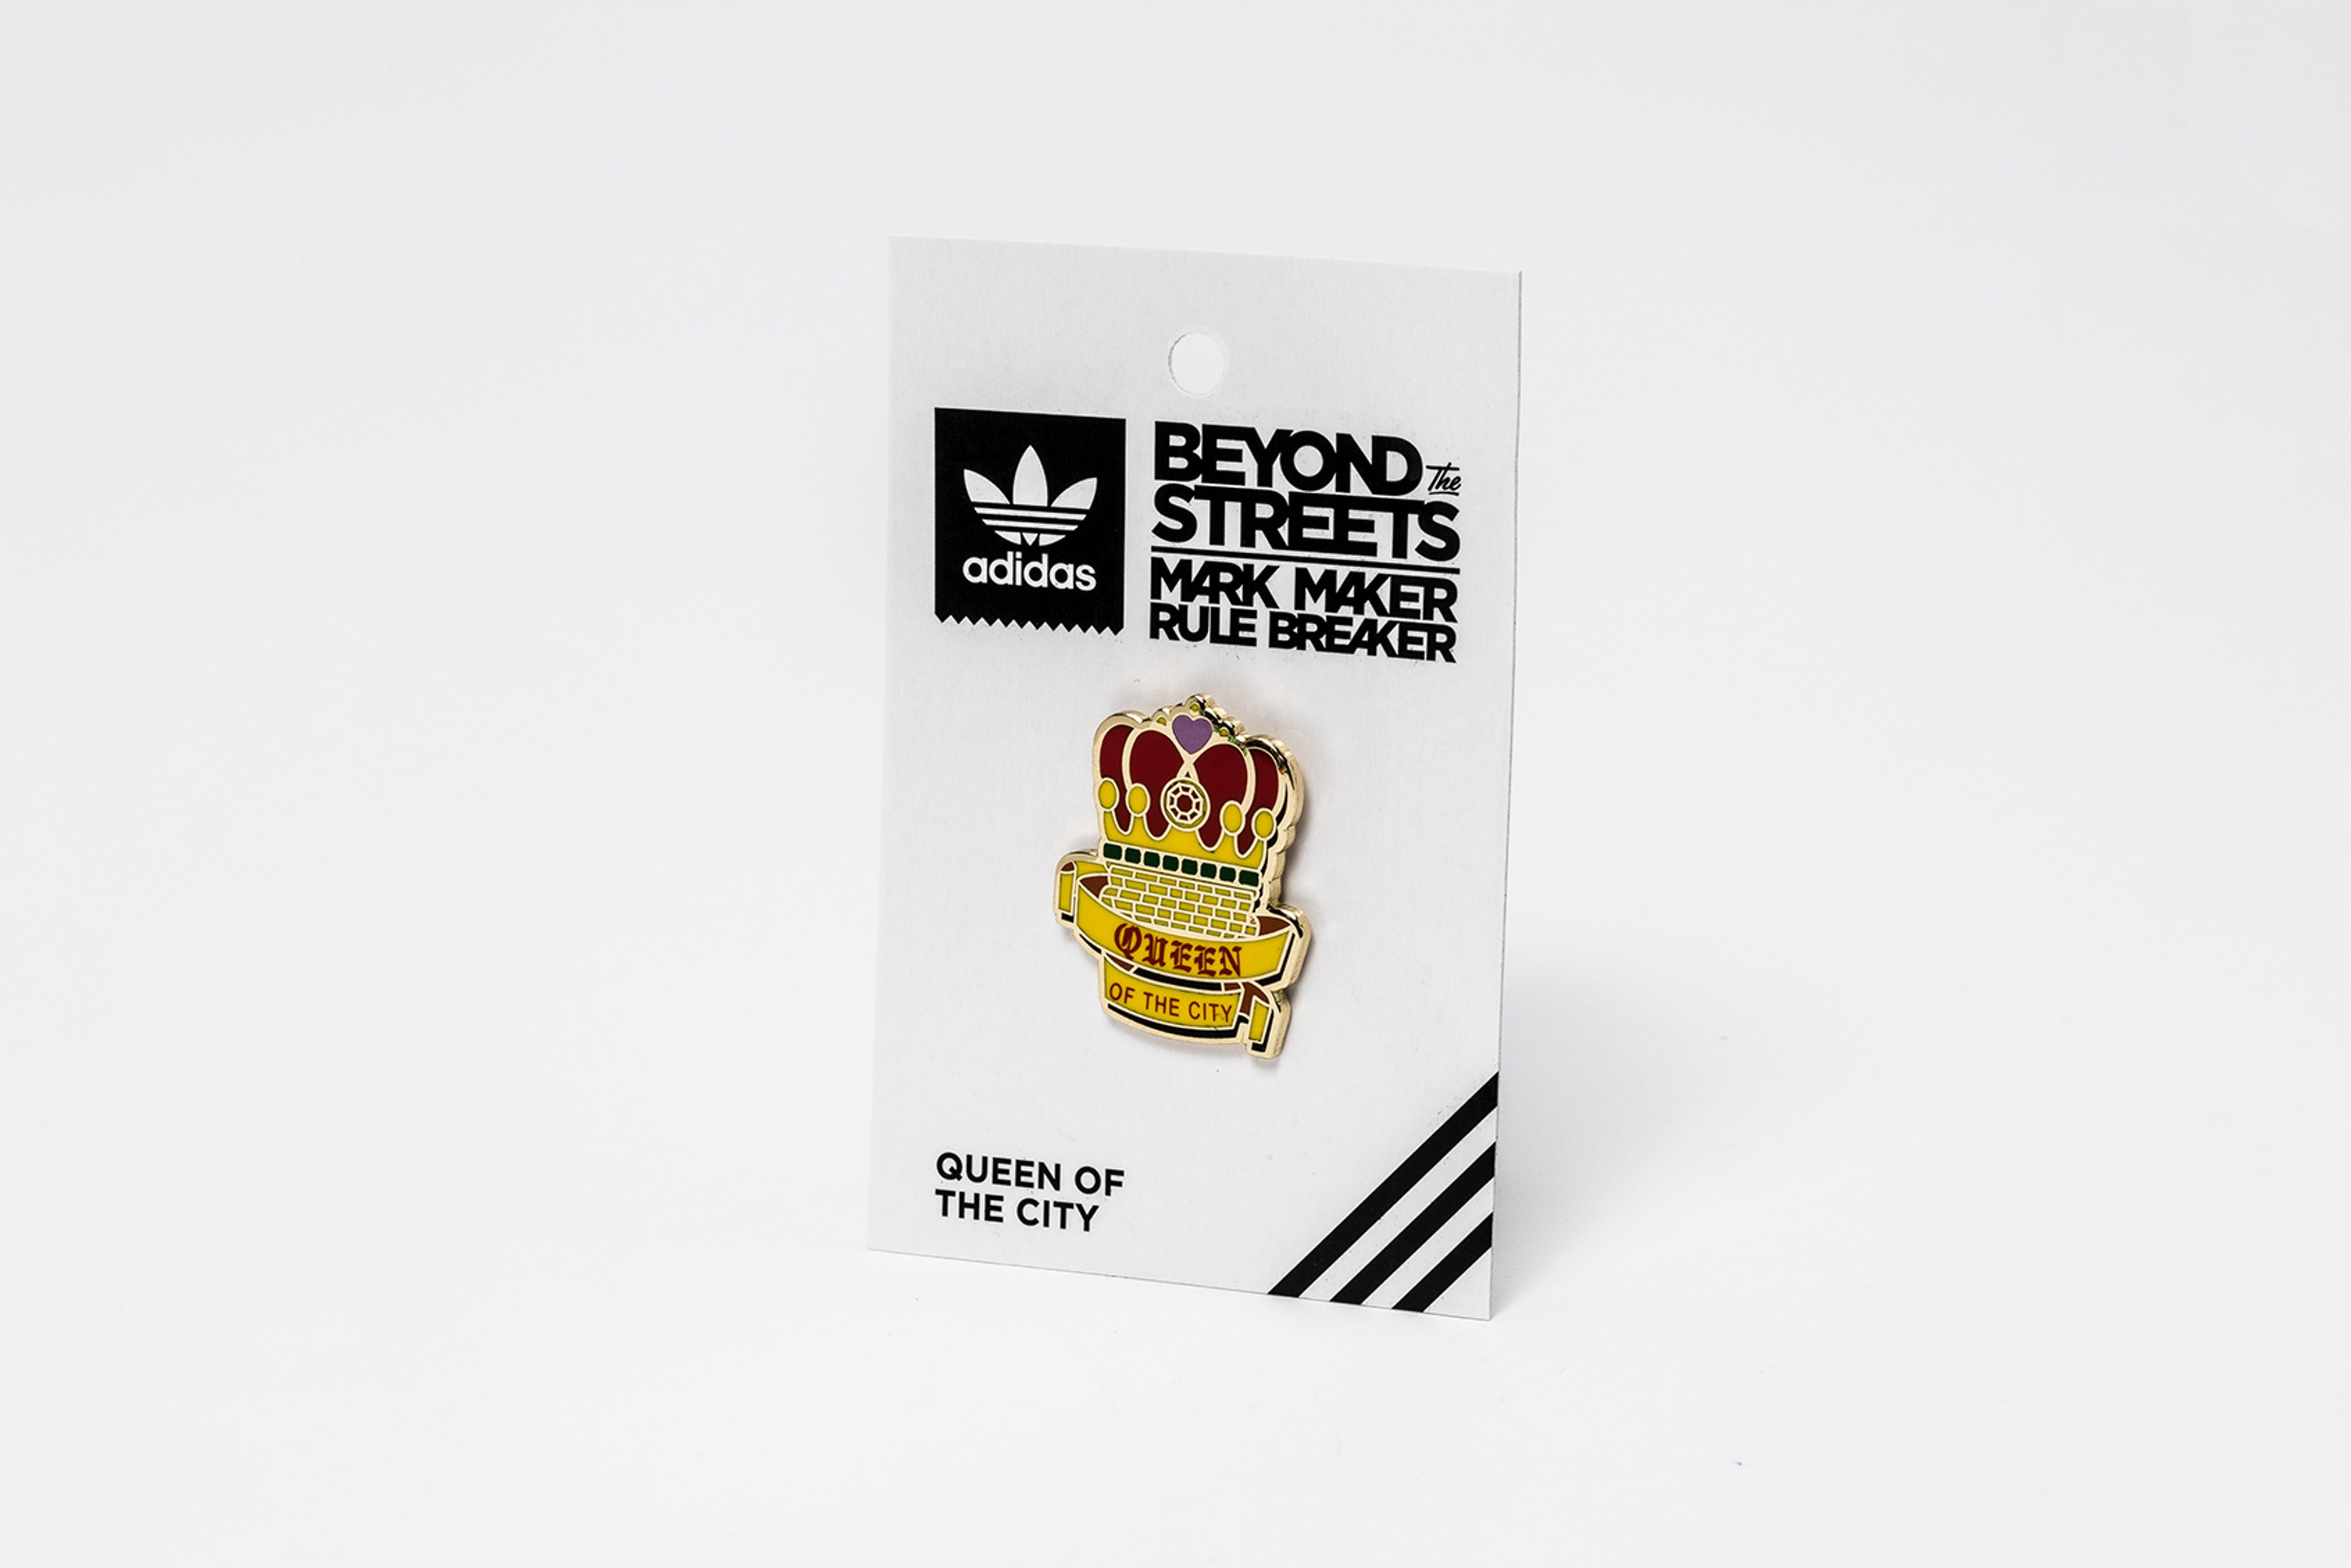 adidas-skateboarding-beyond-streets-collection-23